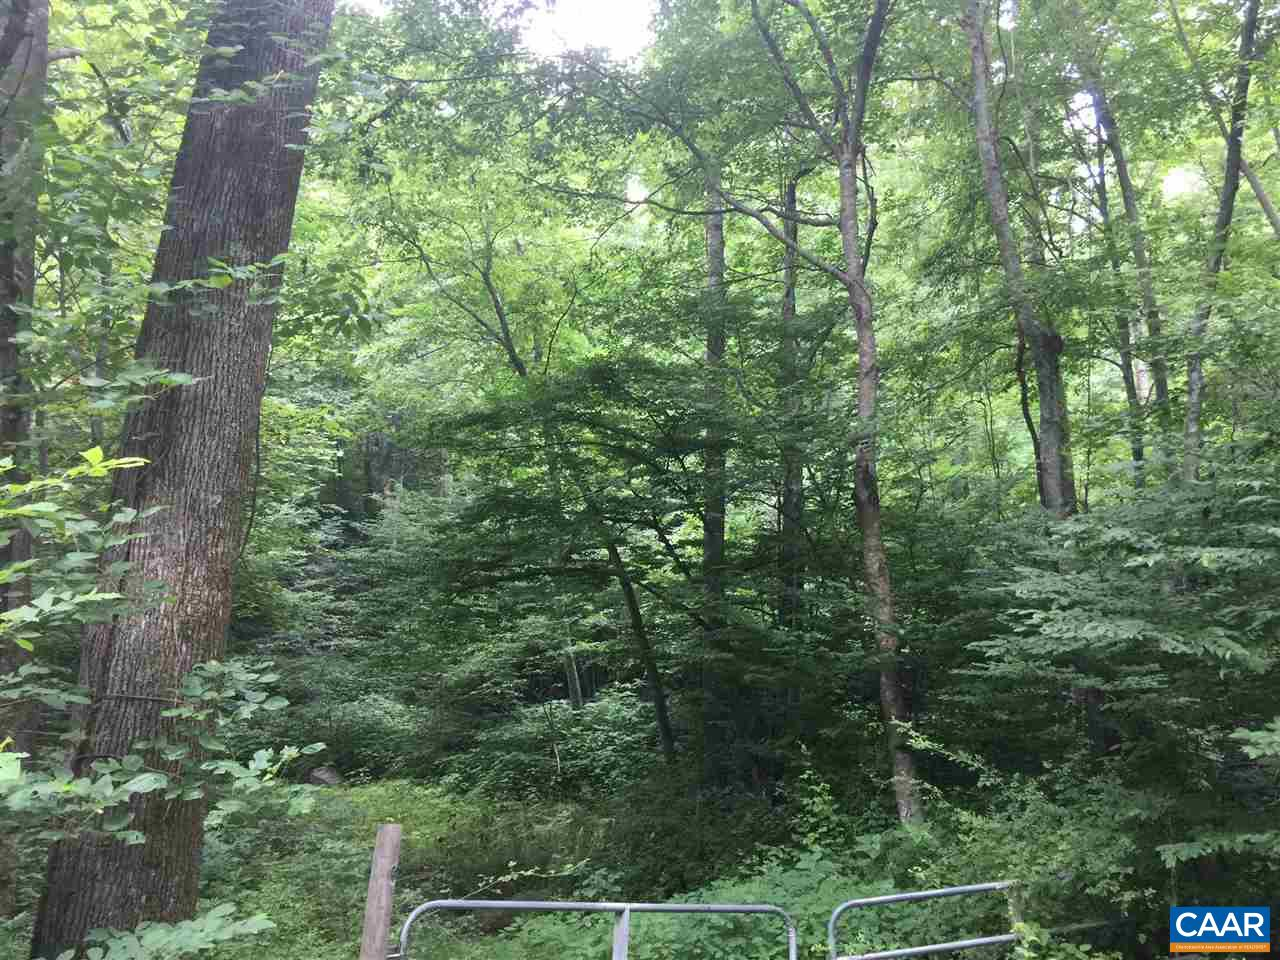 Blue Ridge Mountain Paradise: 74+ acres above Crozet w/ mature timber.  Select timber harvest about 10 years ago created interior roads. Several great home sites.  Build your dream home or cabin or use as a weekend hiking spot.  Land located just below Blue Ridge Parkway.  Over 2000 feet of frontage on Jarmans Gap Road.  Views overlook  Greenwood.